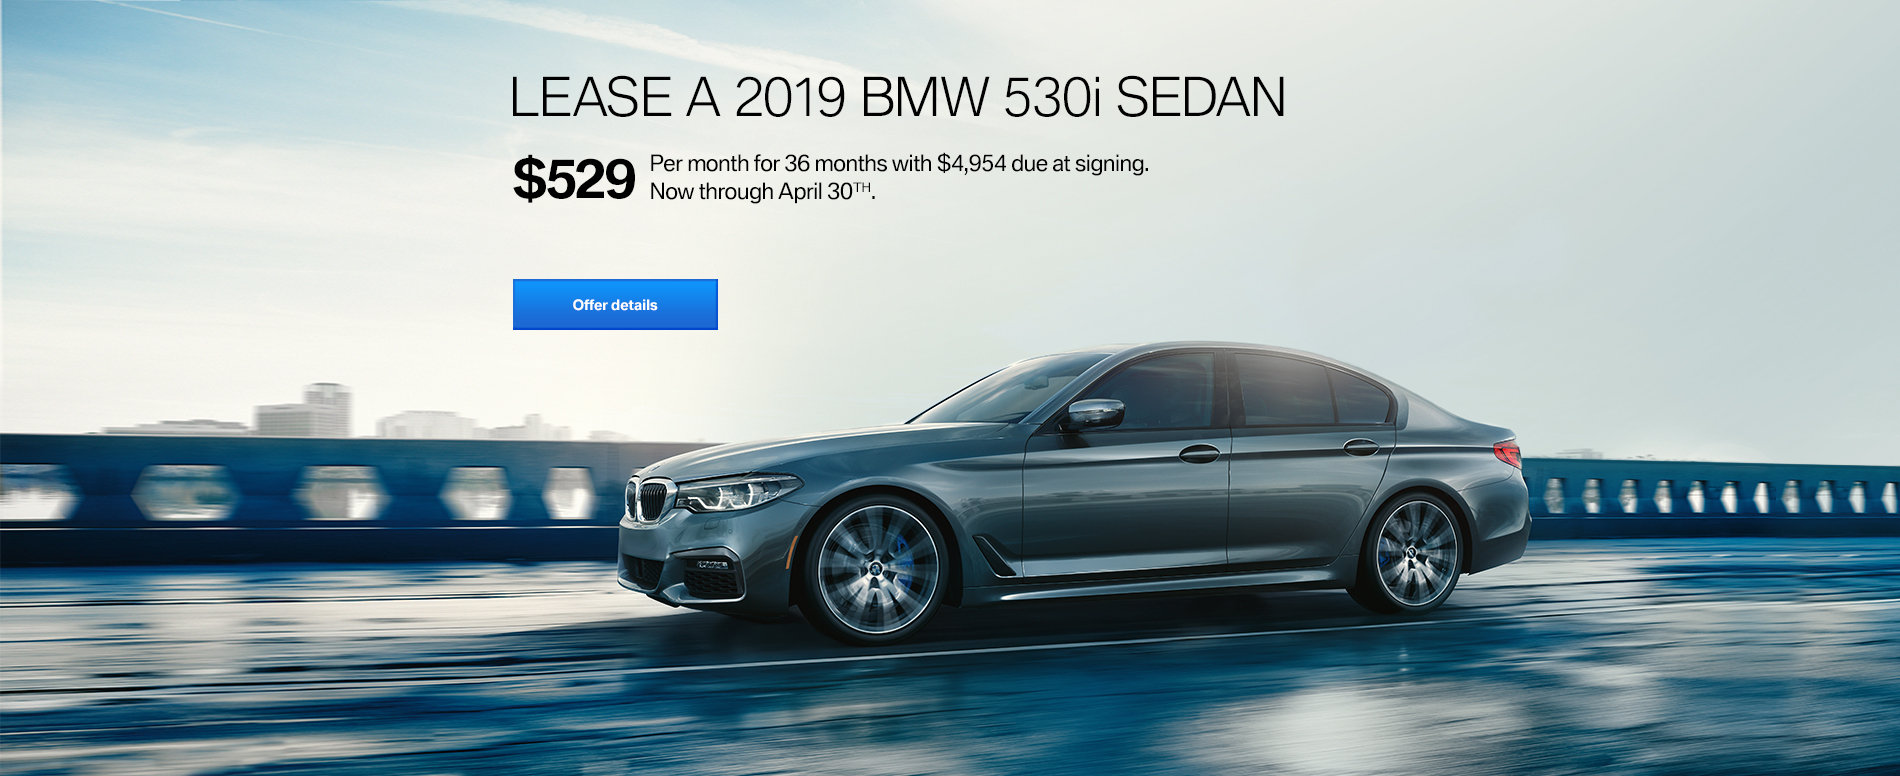 LEASE A 2019 BMW 530i FOR $529/MONTH FOR 36 MONTHS WITH $4,954 D